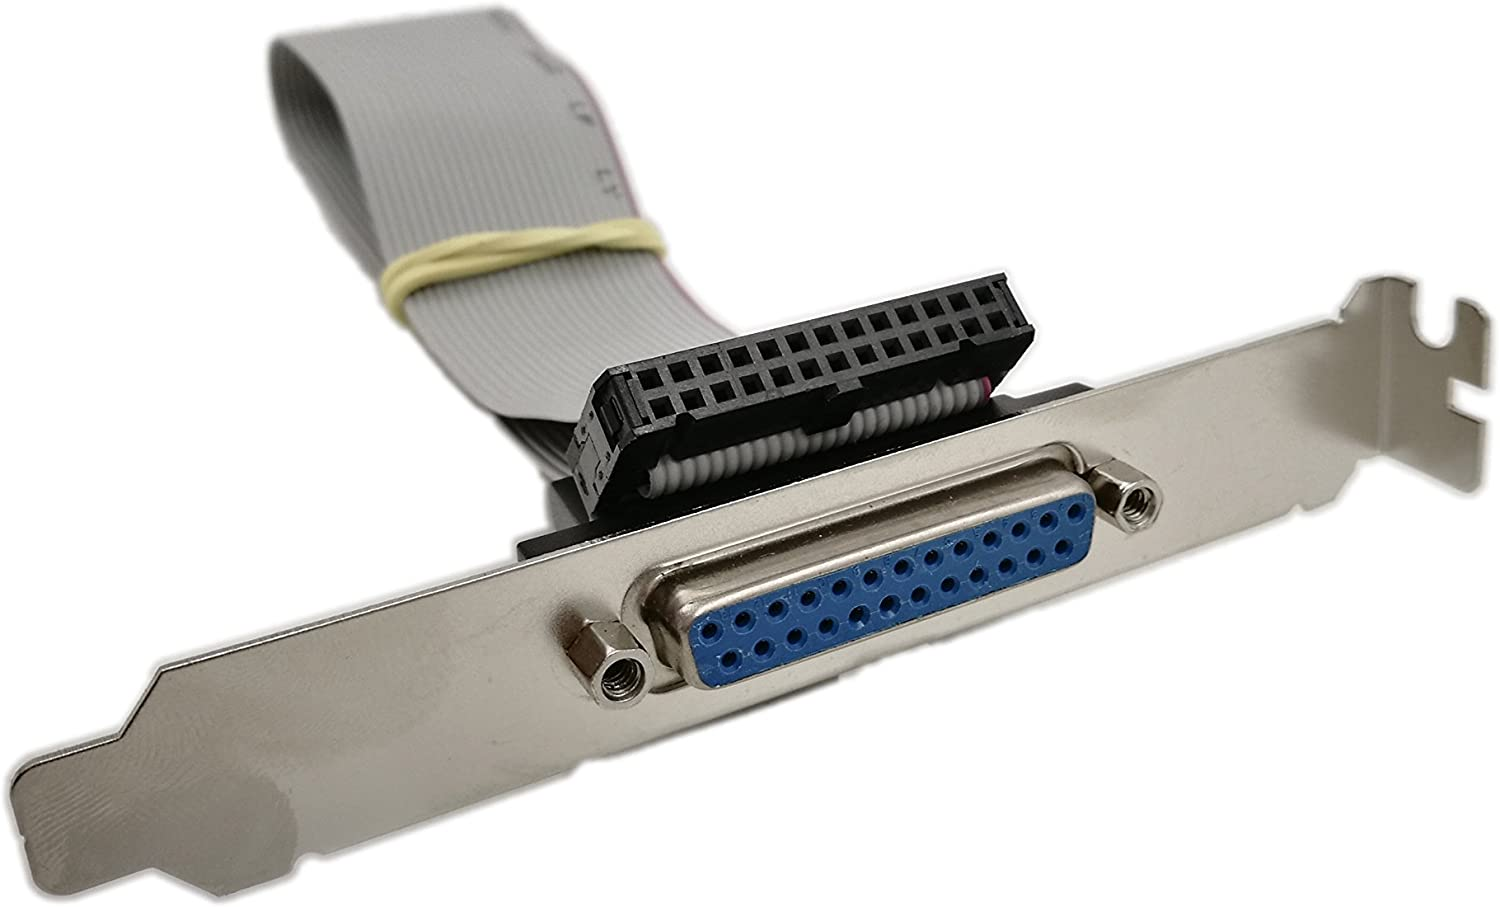 SINLOON DB25 Adapter with Bracket to IDC 26 Pin Ribbon Cable, Motherboard Slot Plate Parallel Panel DB-25 Female to 26 Pin IDC Socket Flat Cable